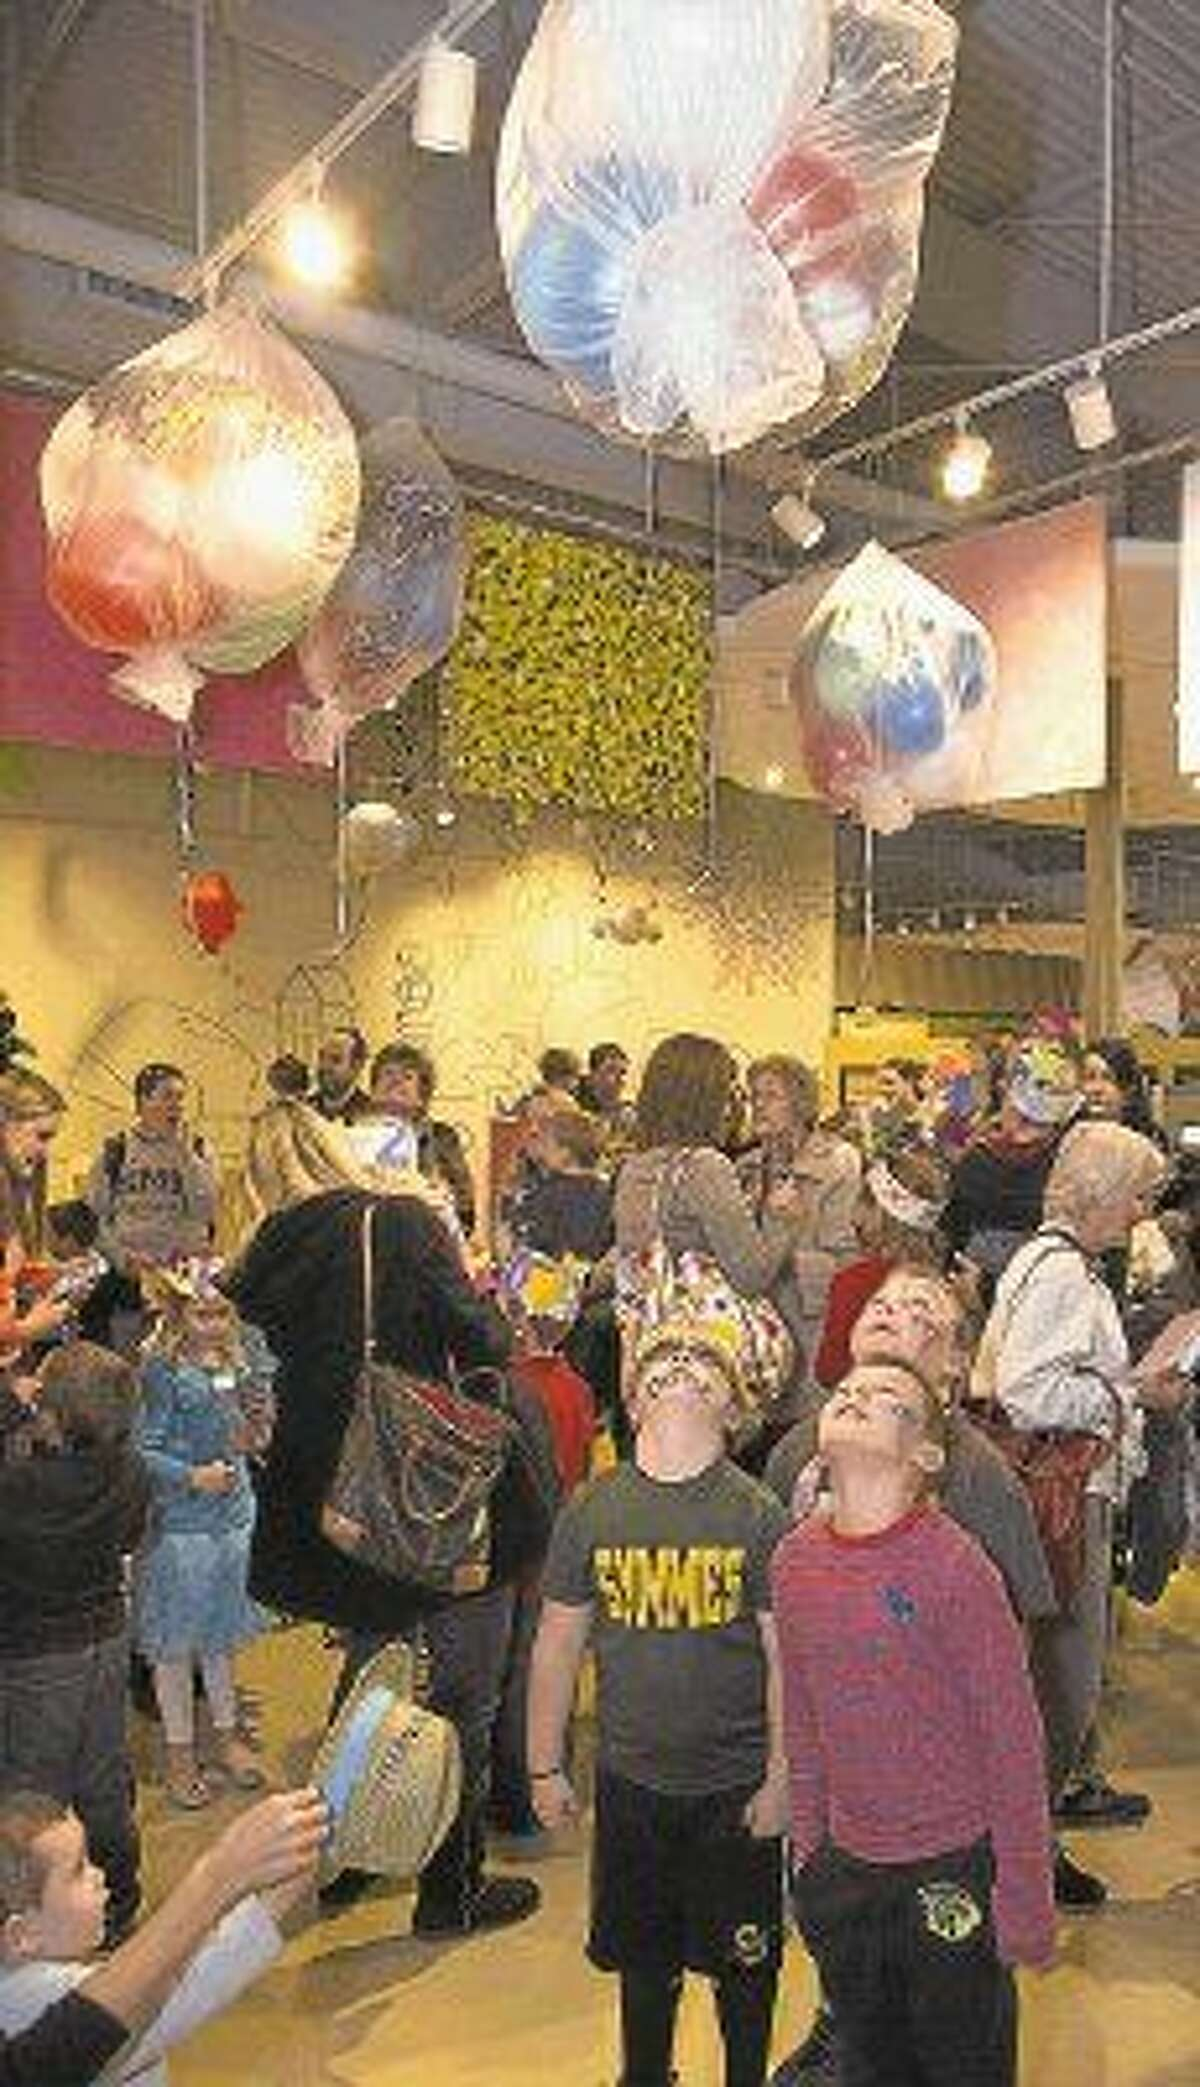 The Children's Museum of Houston's Rockin' New Year's Noon is the city's longest-running New Year's Eve celebration just for kids.